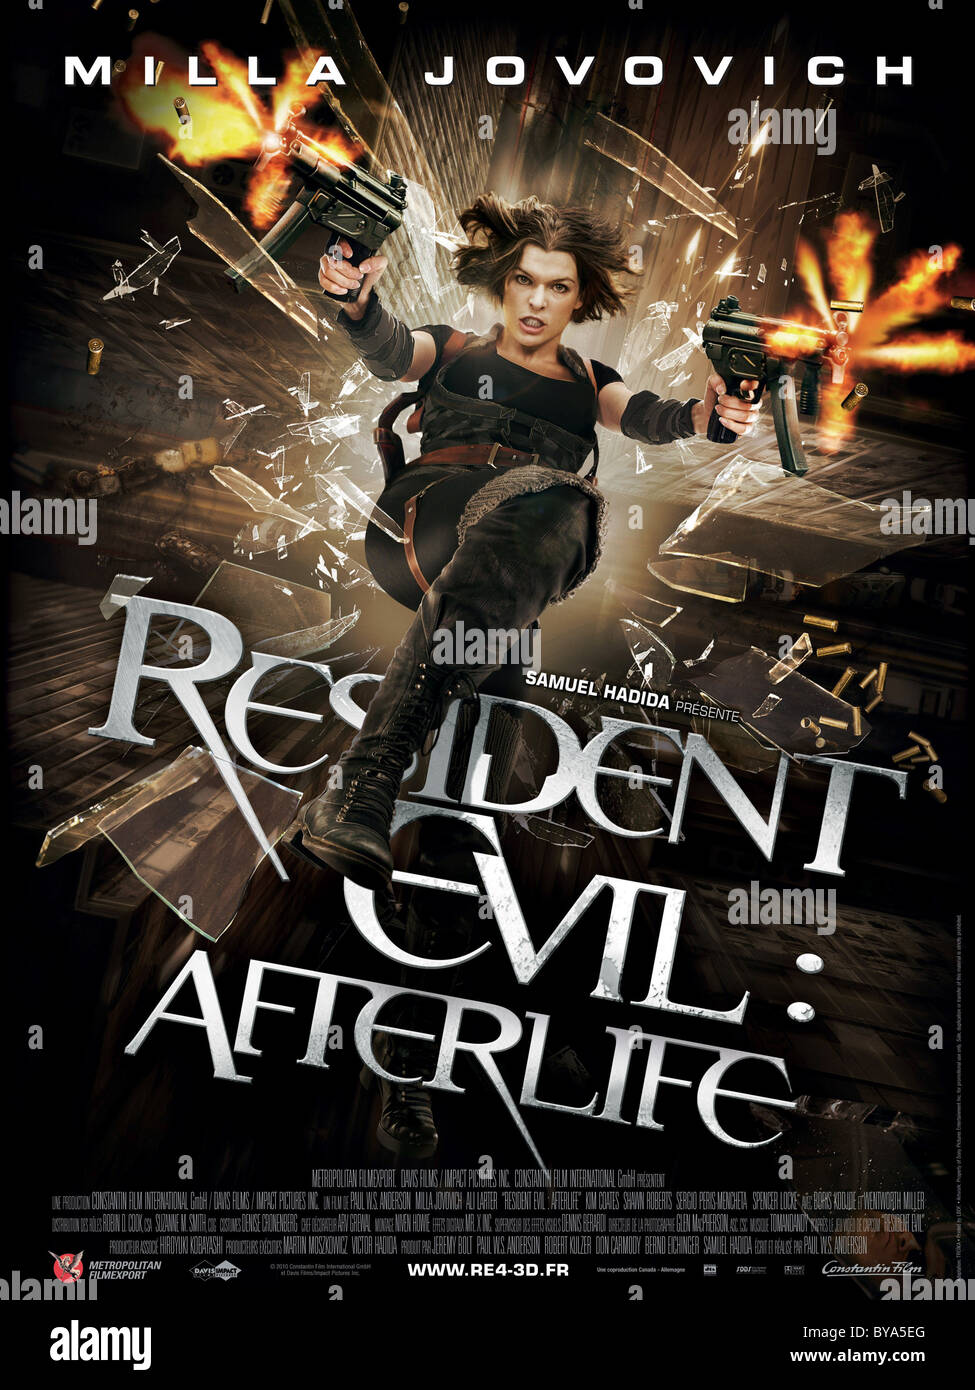 Resident Evil: Afterlife Año : 2010 USA / Director Británico : Paul W.S. Anderson Milla Jovovich póster Imagen De Stock